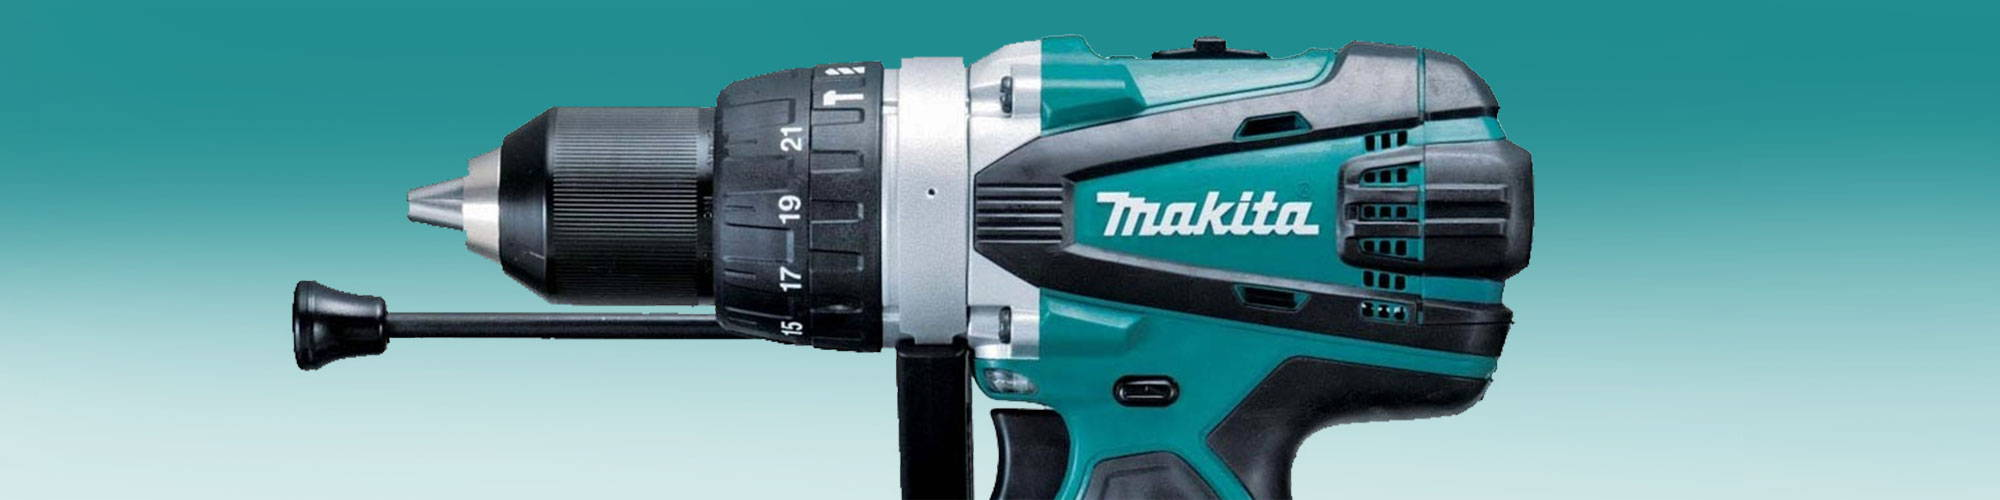 Makita DHP458 Combi Drill - Top 5 Things You Need to Know